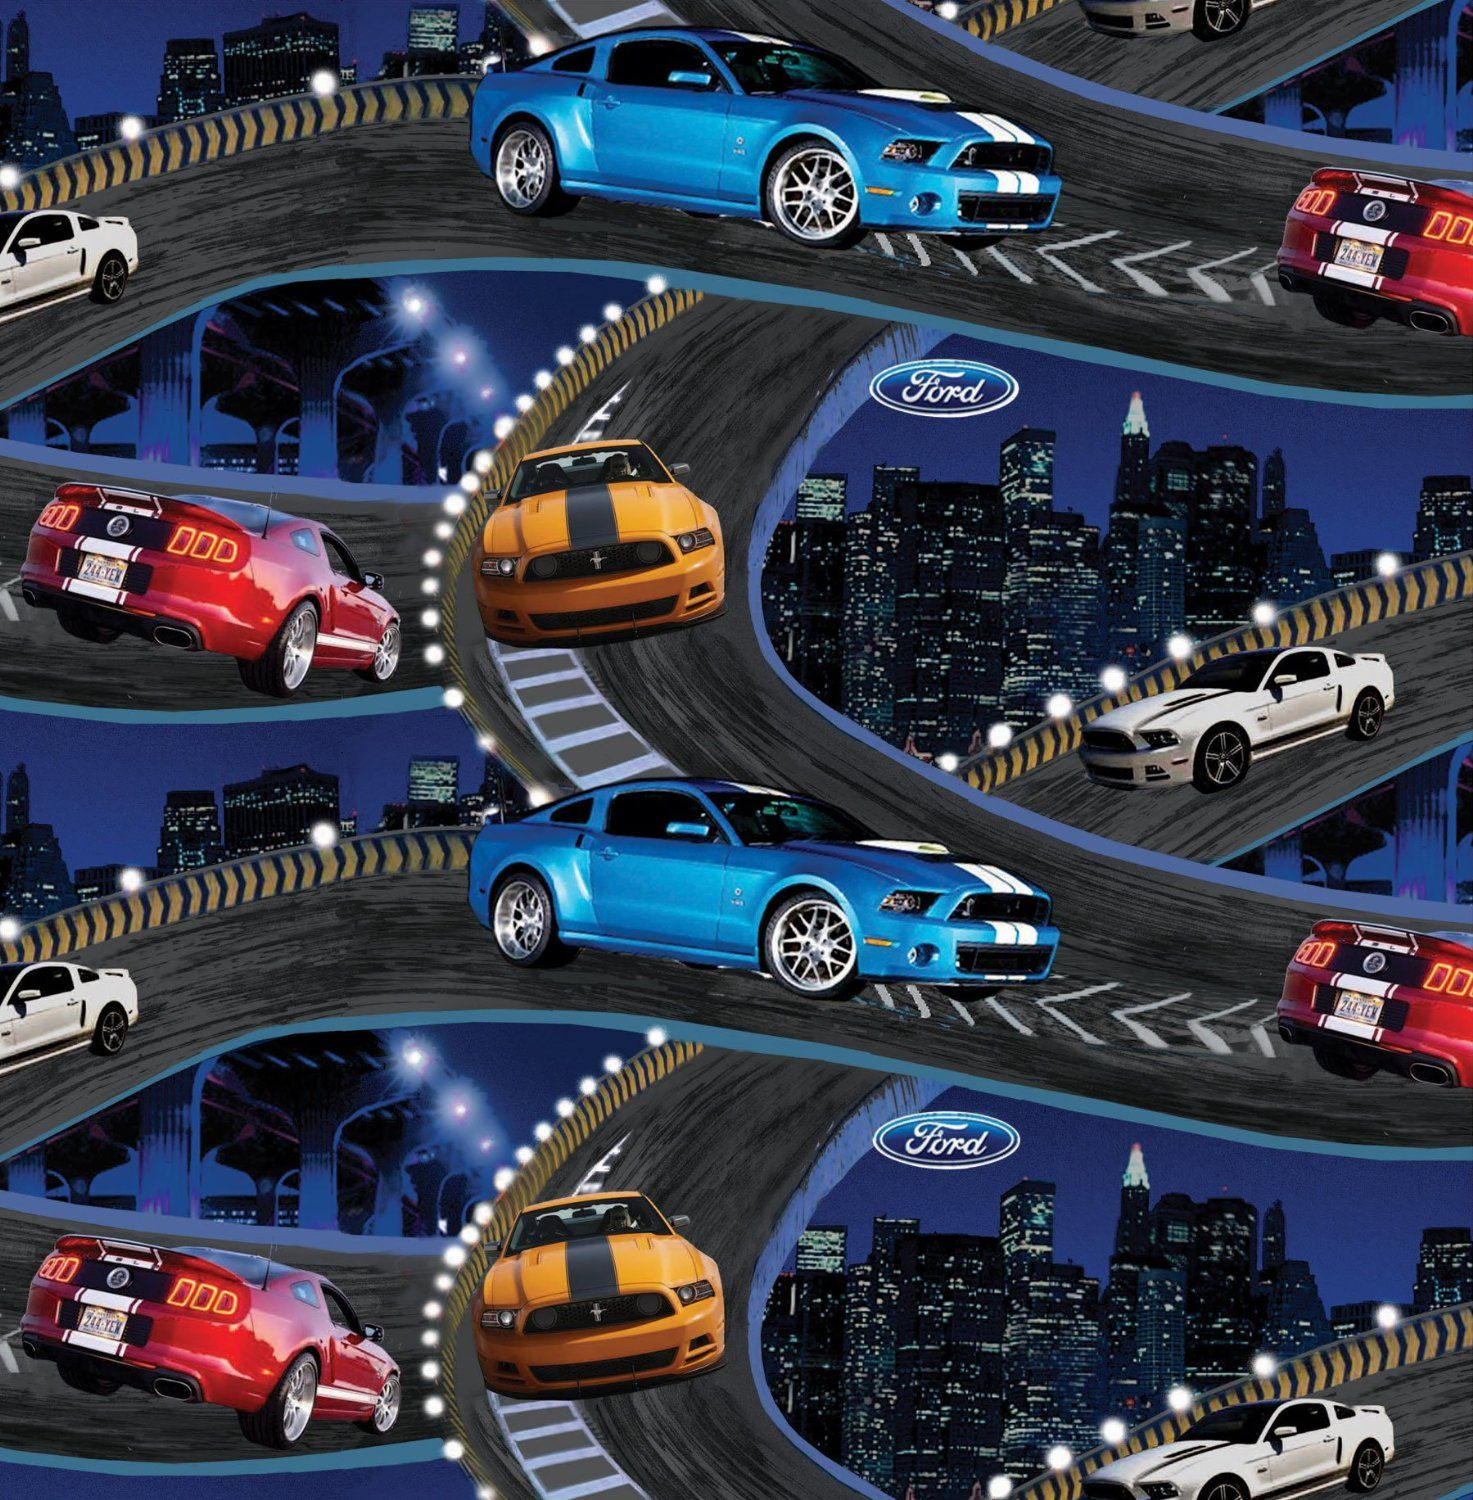 FORD MUSTANG COTTON FABRIC-FORD COTTON FABRIC - SOLD BY THE YARD - LindsayFord.  sc 1 st  Pinterest & FORD MUSTANG COTTON FABRIC-FORD COTTON FABRIC - SOLD BY THE YARD ... markmcfarlin.com